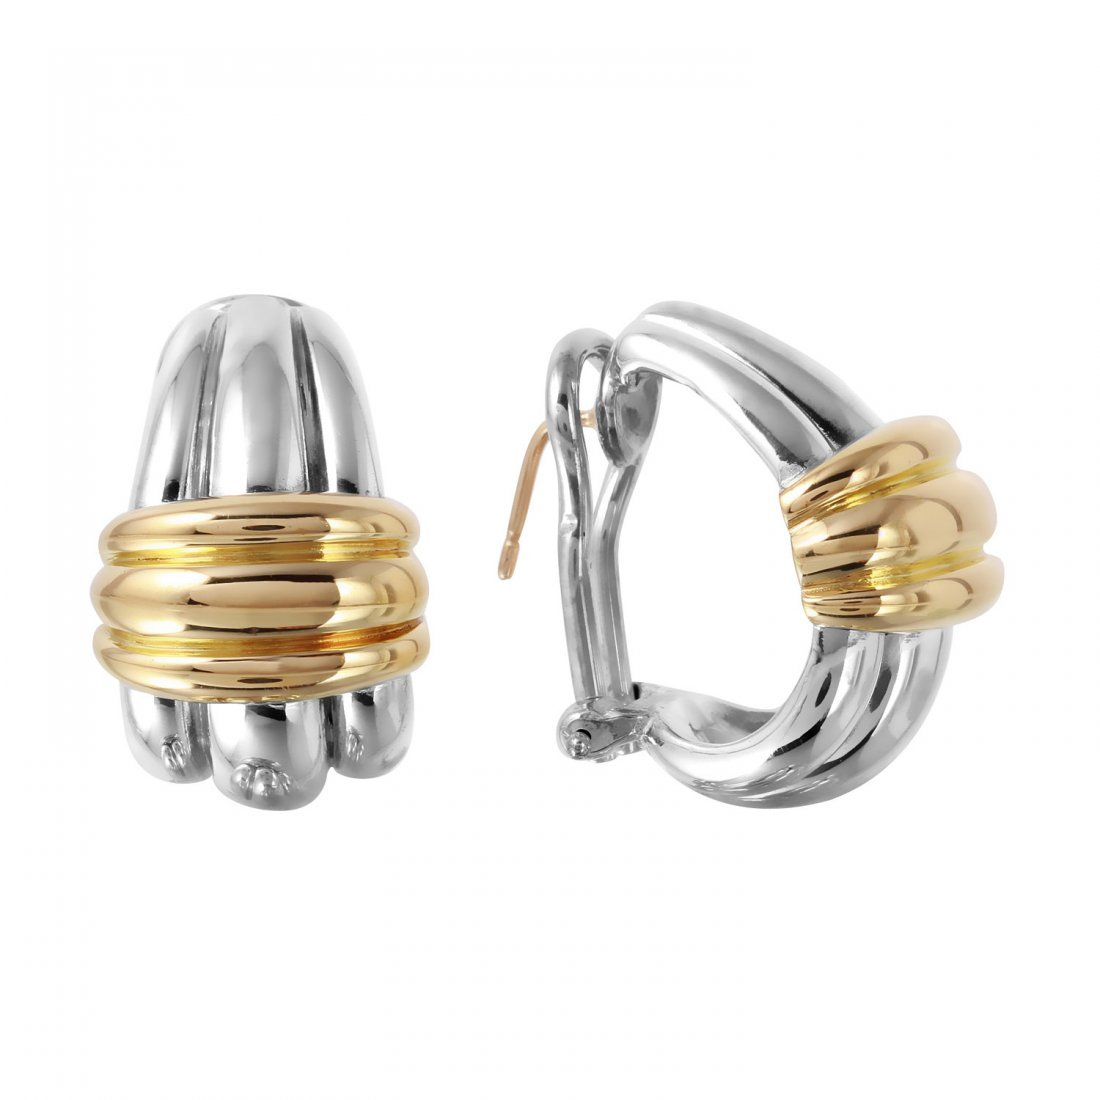 18KT Yellow Gold and Sterling Silver Earrings - 2